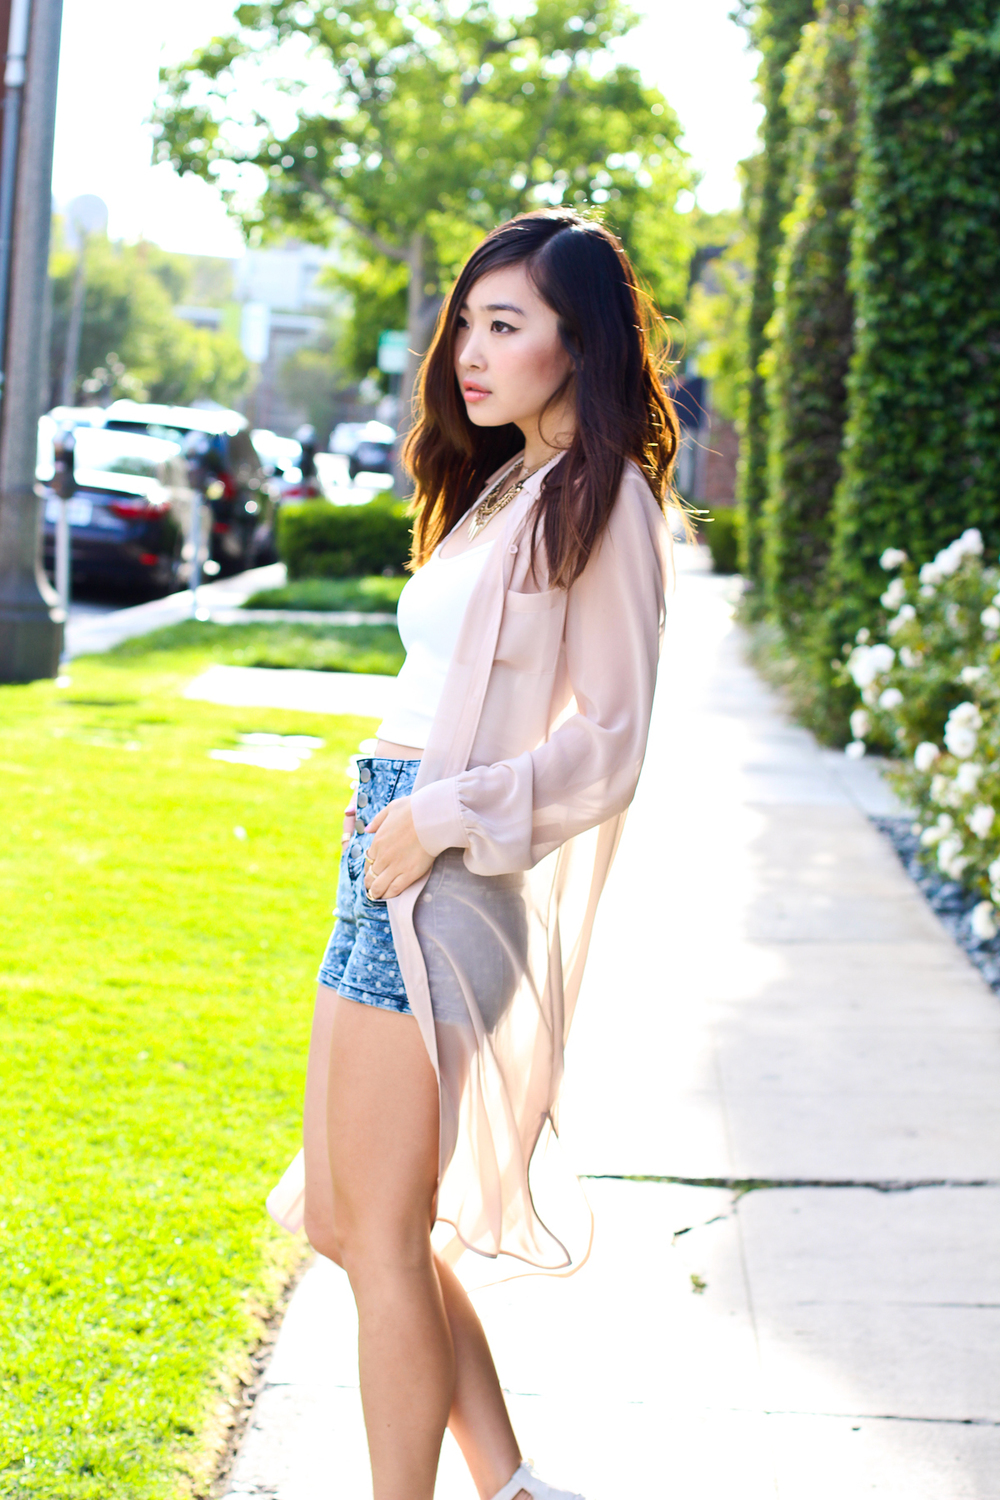 Ruby+Park+The+Ruby+Element+Los+Angeles+Fashion+Blogger+Summer+Trends+Streetstyle+Photography+by+Ryan+Chua-4523edit.jpg